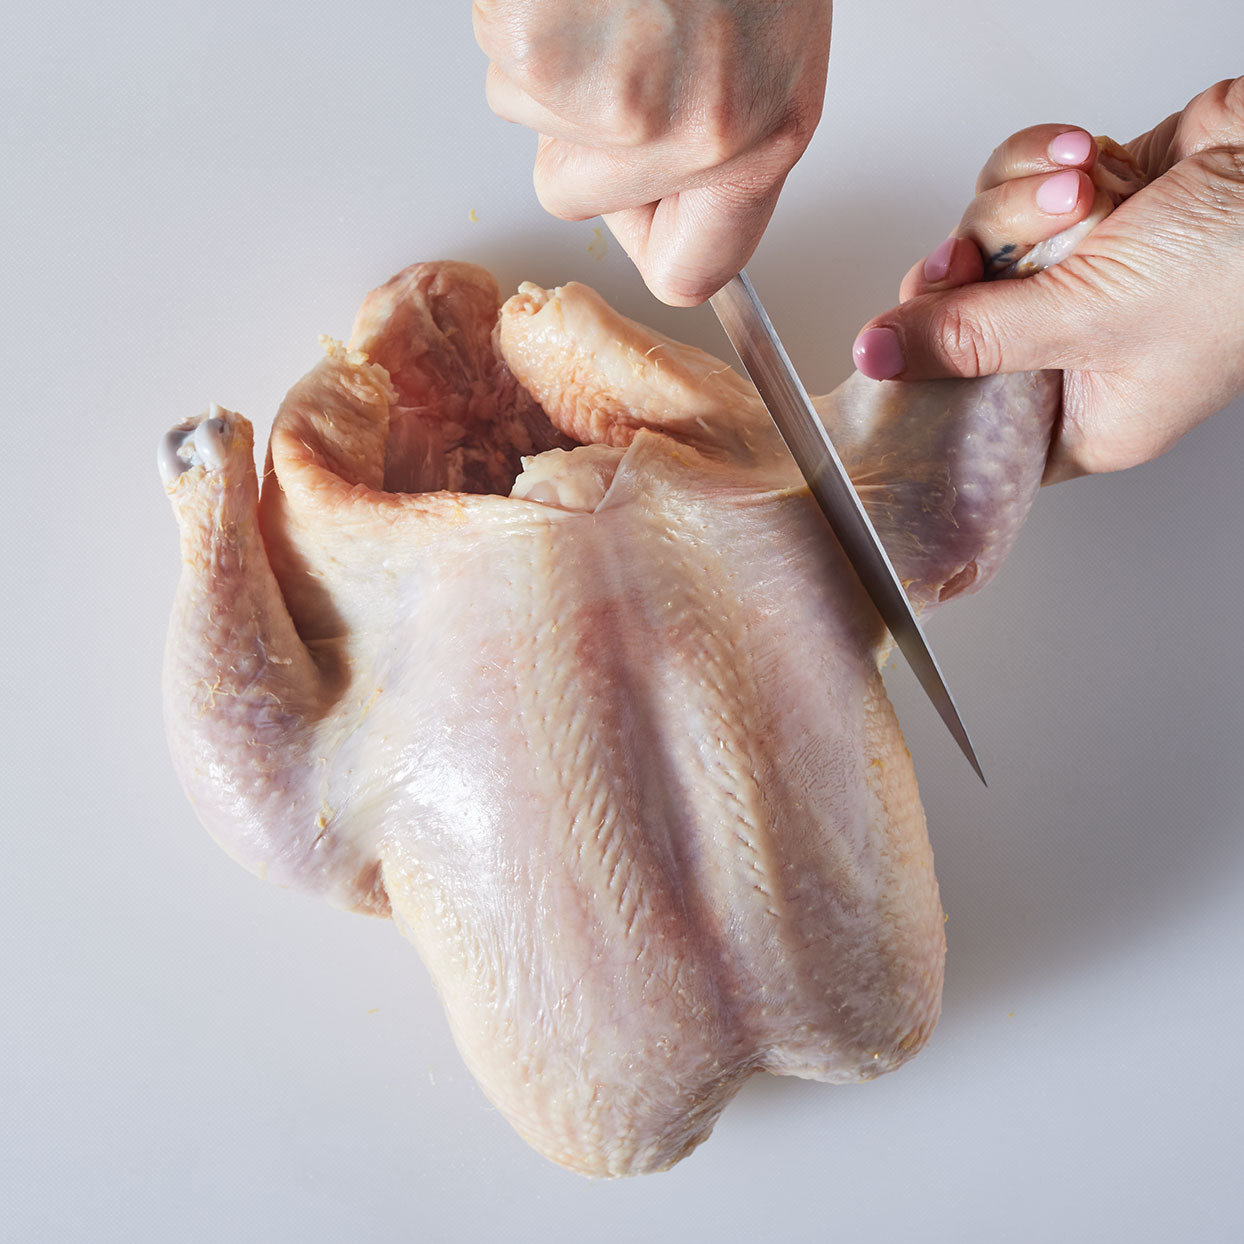 How to cut up a whole chicken step 2